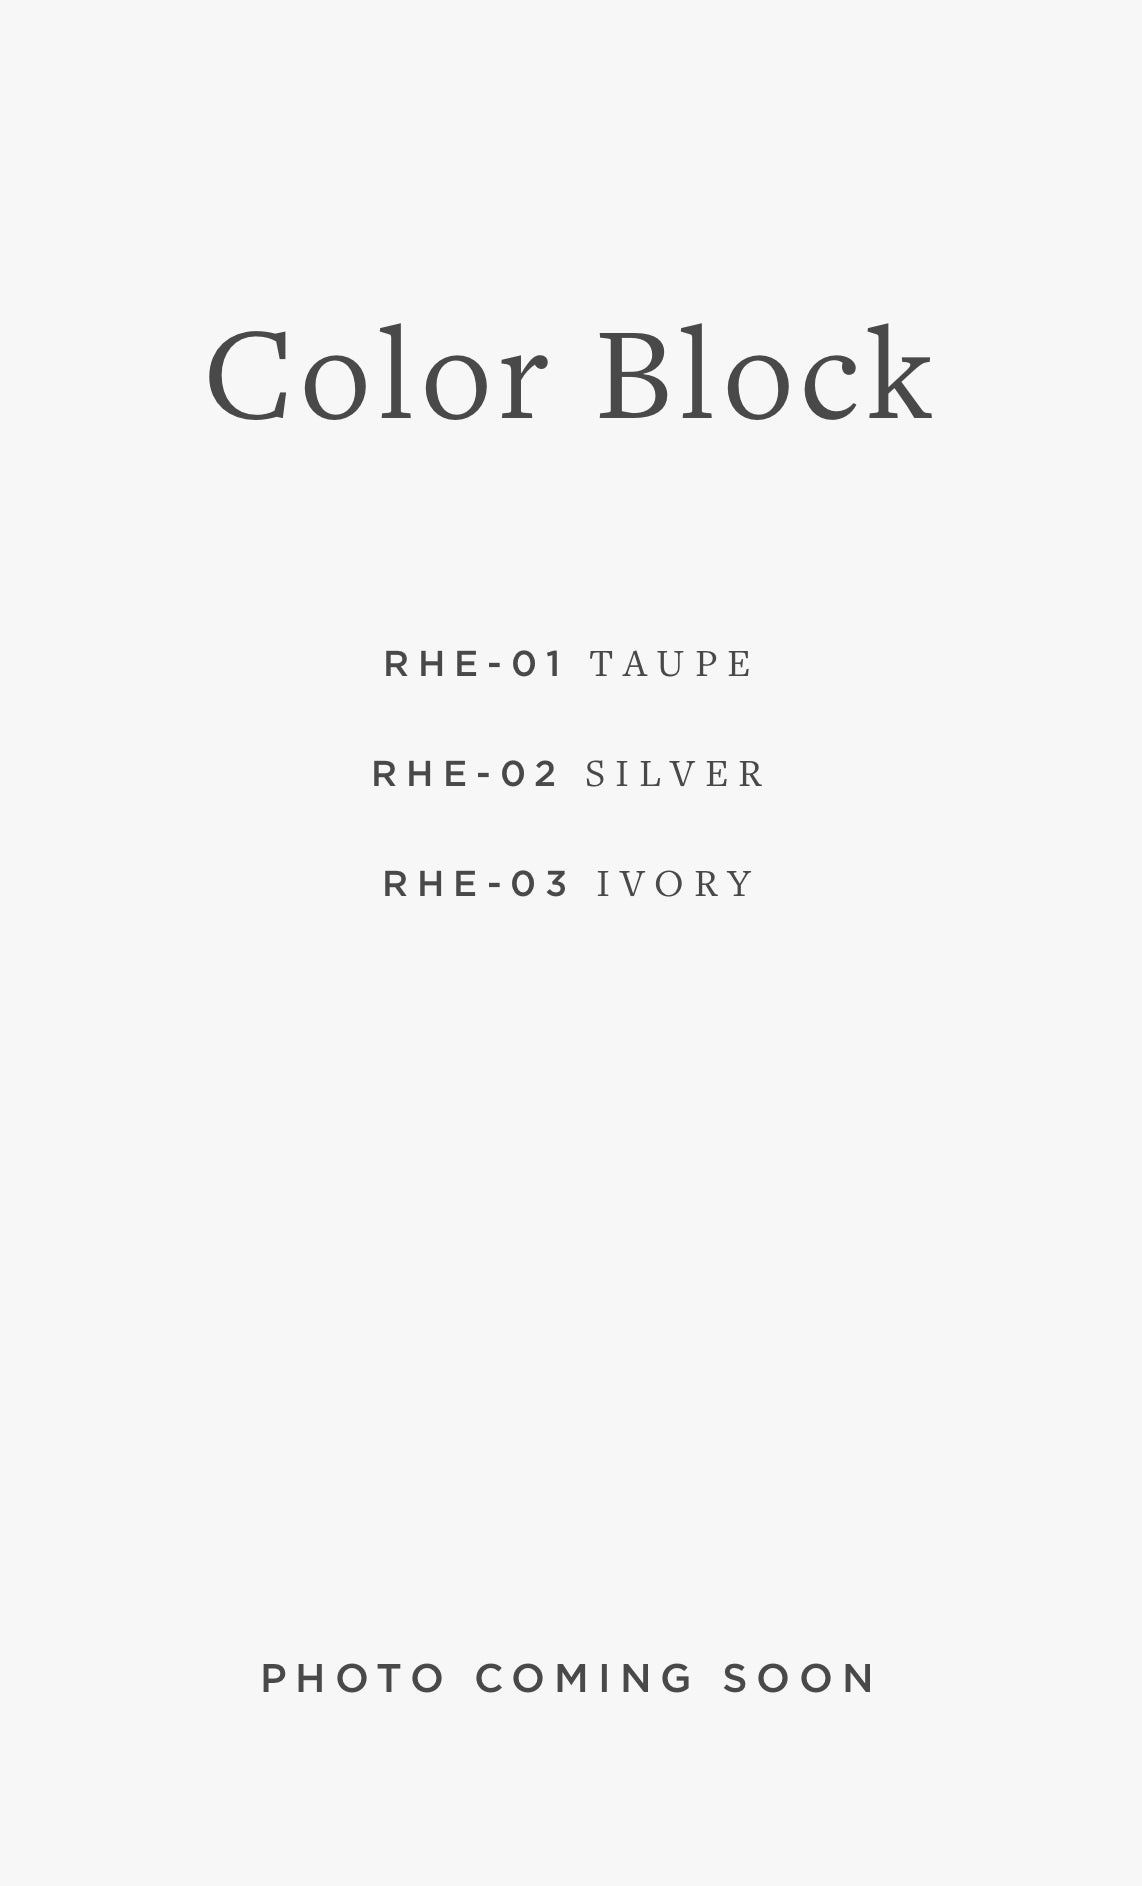 RHE-06 COLOR BLOCK / 01